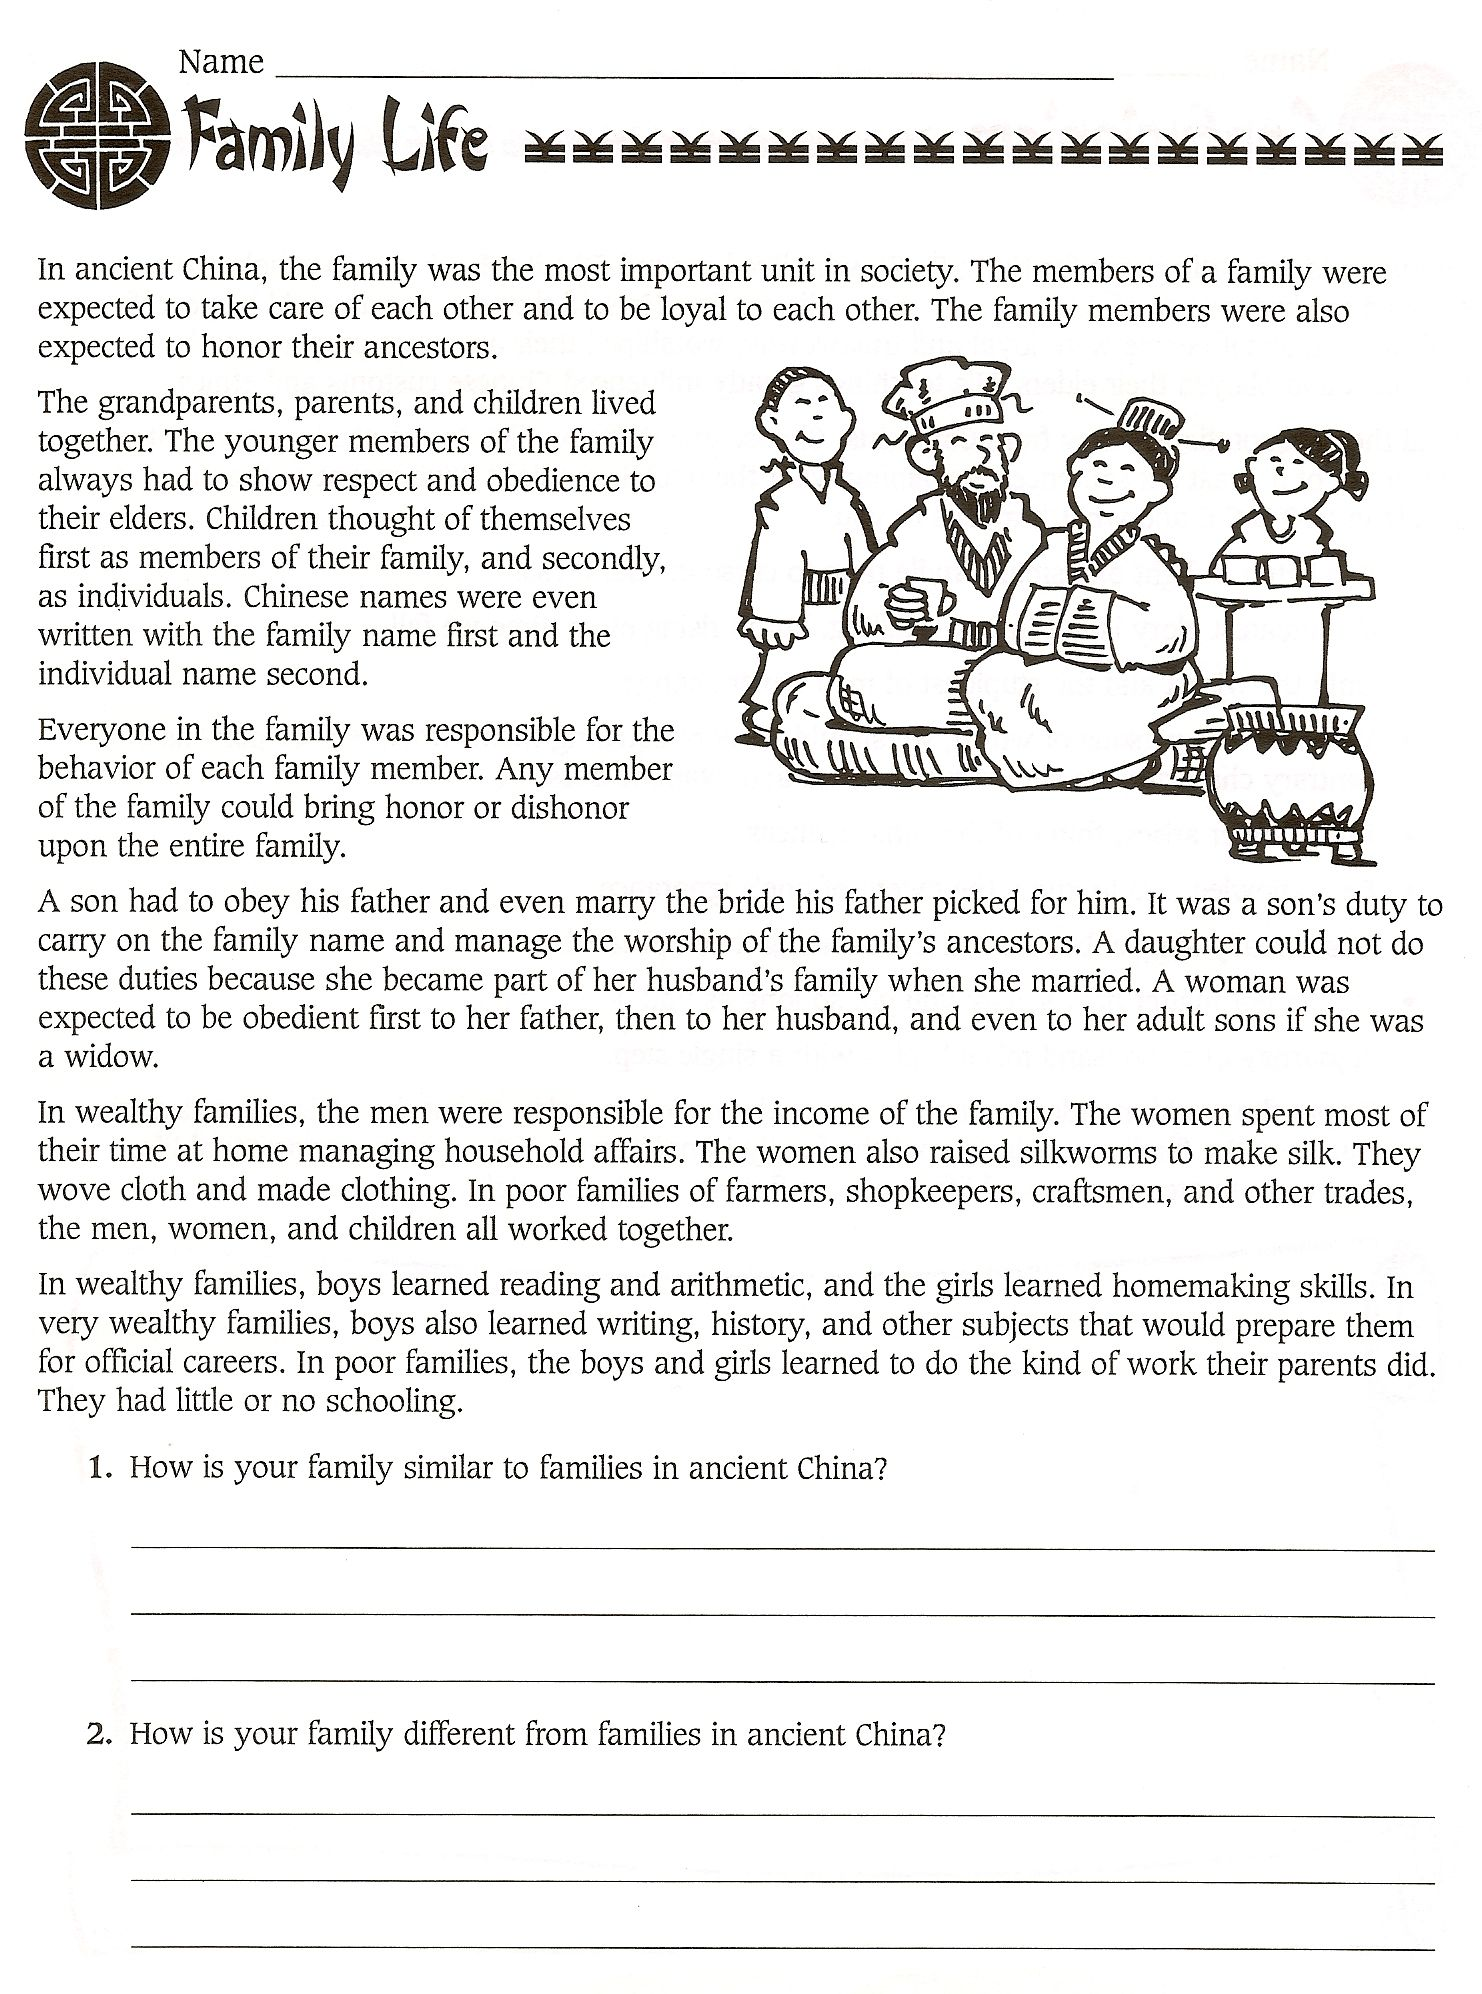 Worksheets Social Studies 4th Grade Worksheets 6th grade social studies ancient china worksheets free free